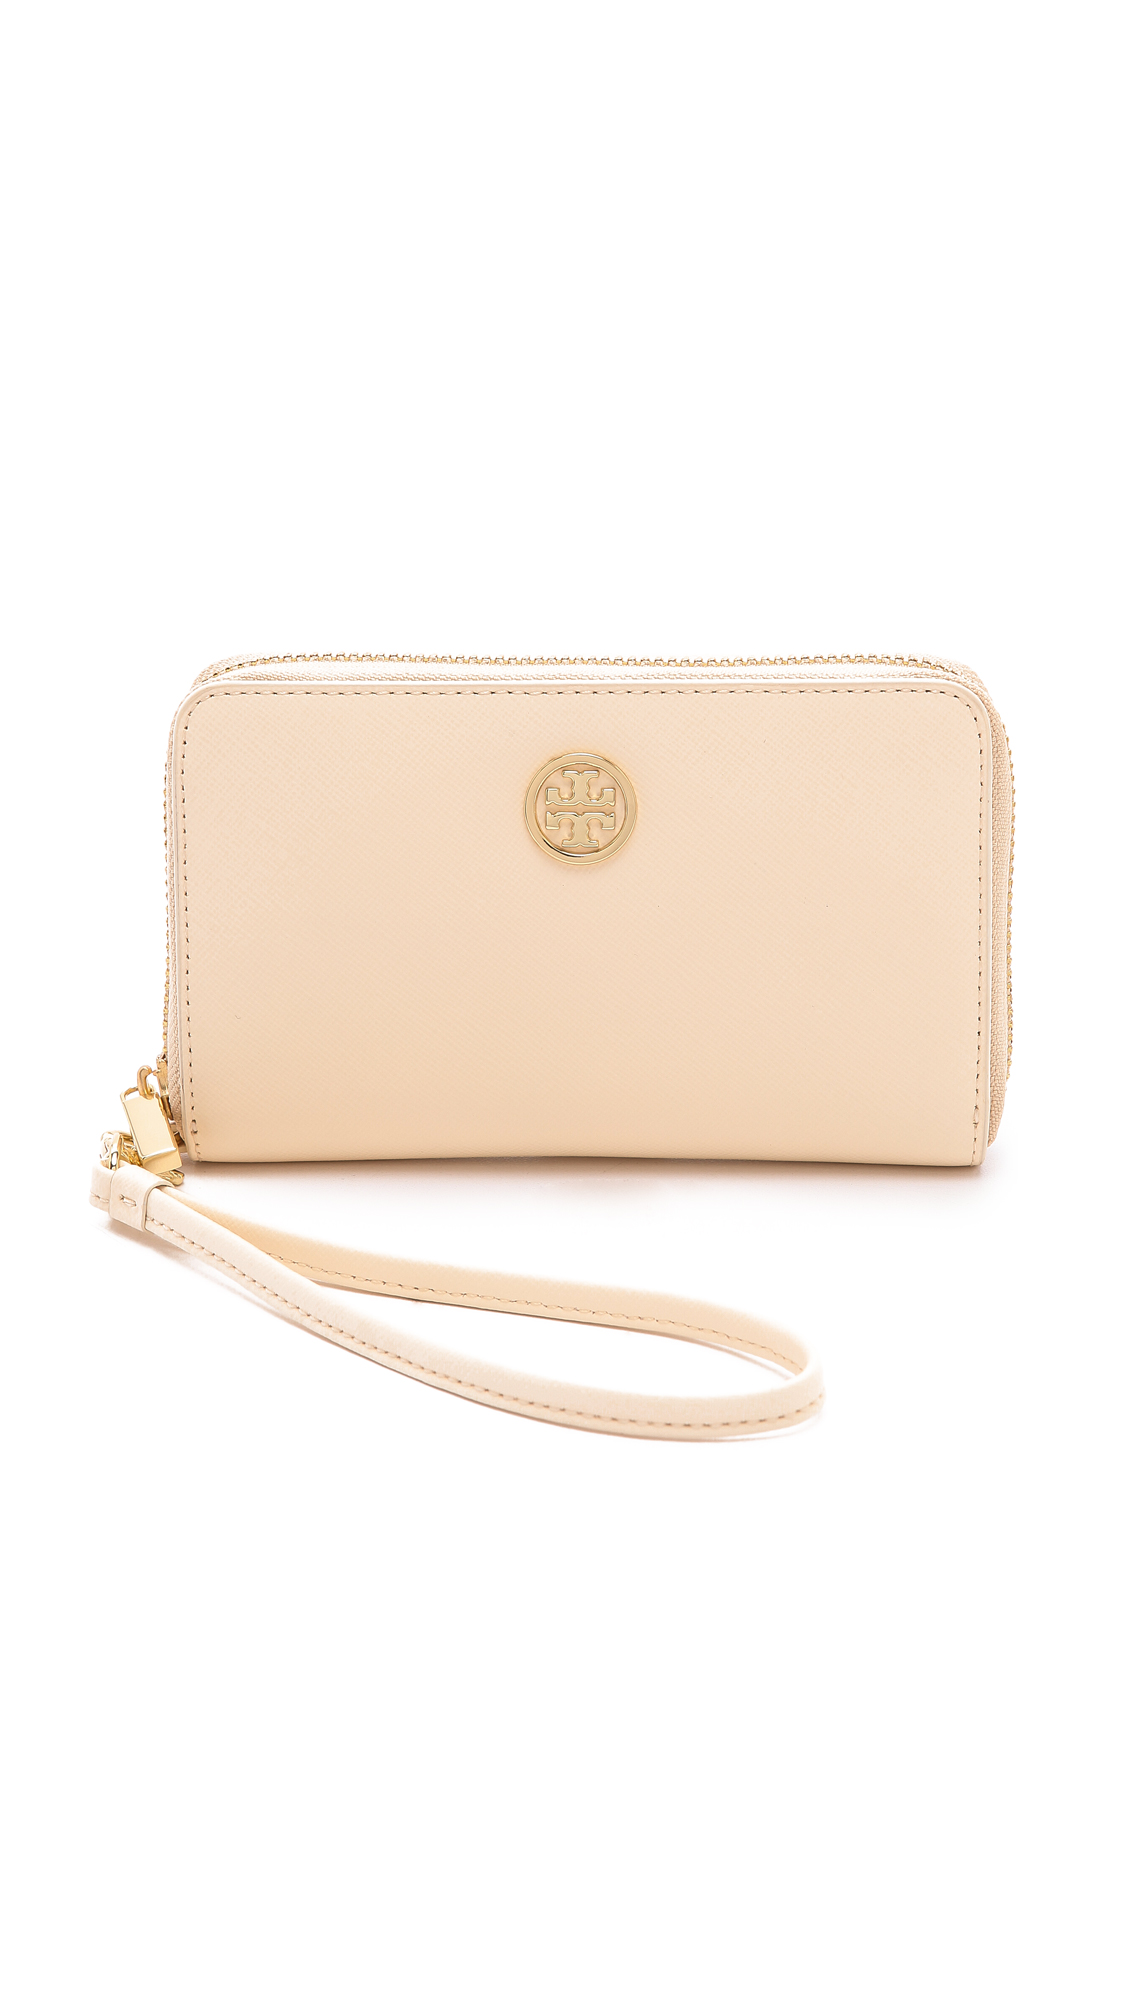 572d1595924 Lyst - Tory Burch Robinson Smartphone Wristlet in Natural